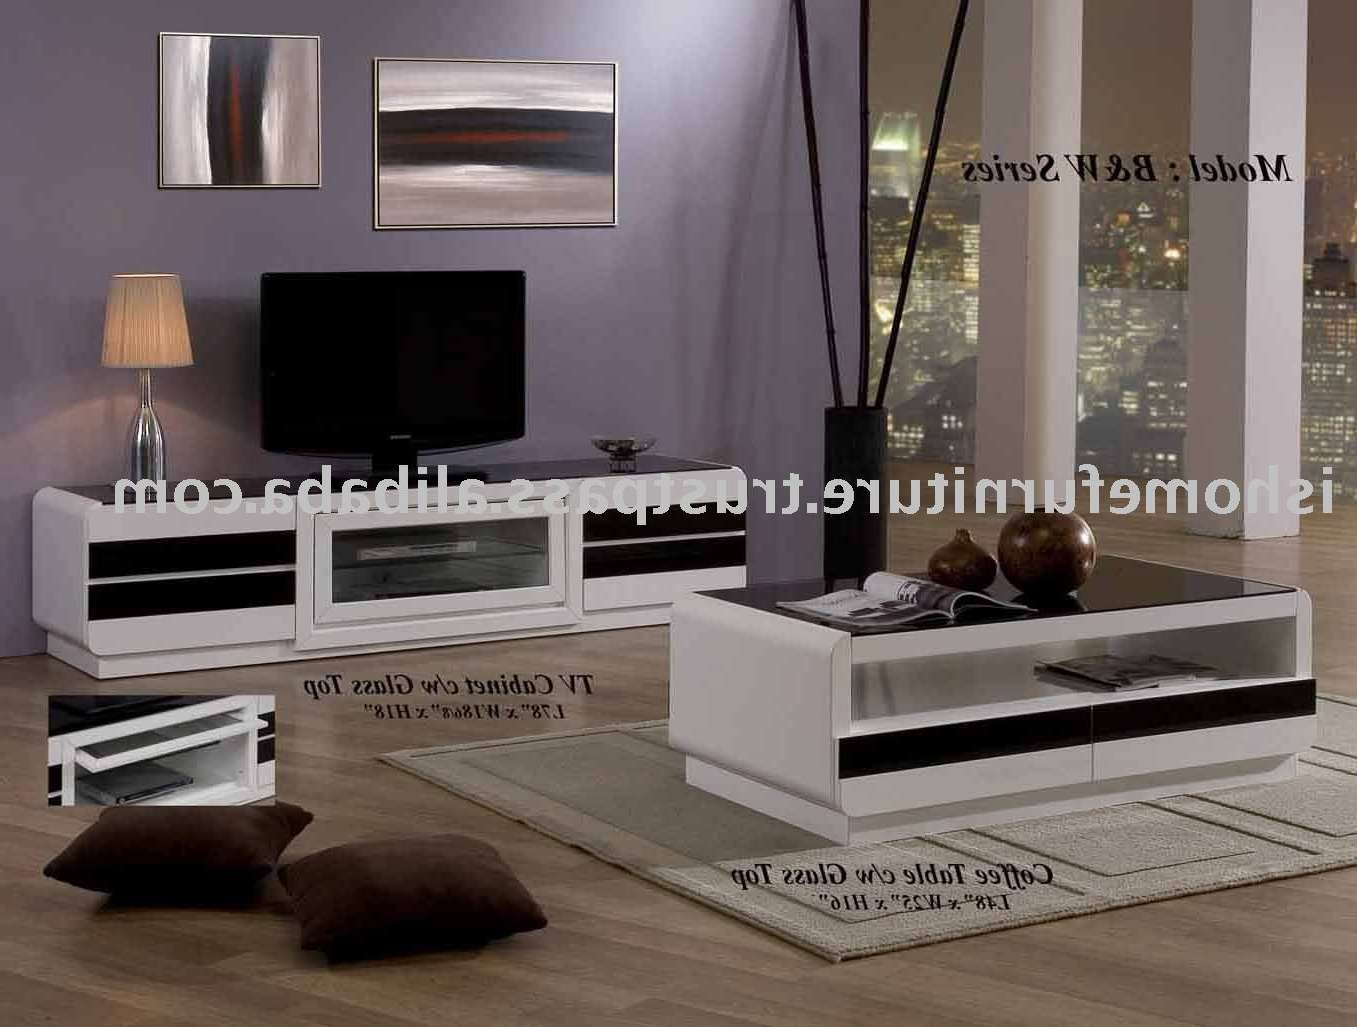 B&w Series – Coffee Table,tv Stand – Buy Home Furniture,coffee Inside Tv Cabinets And Coffee Table Sets (View 1 of 20)